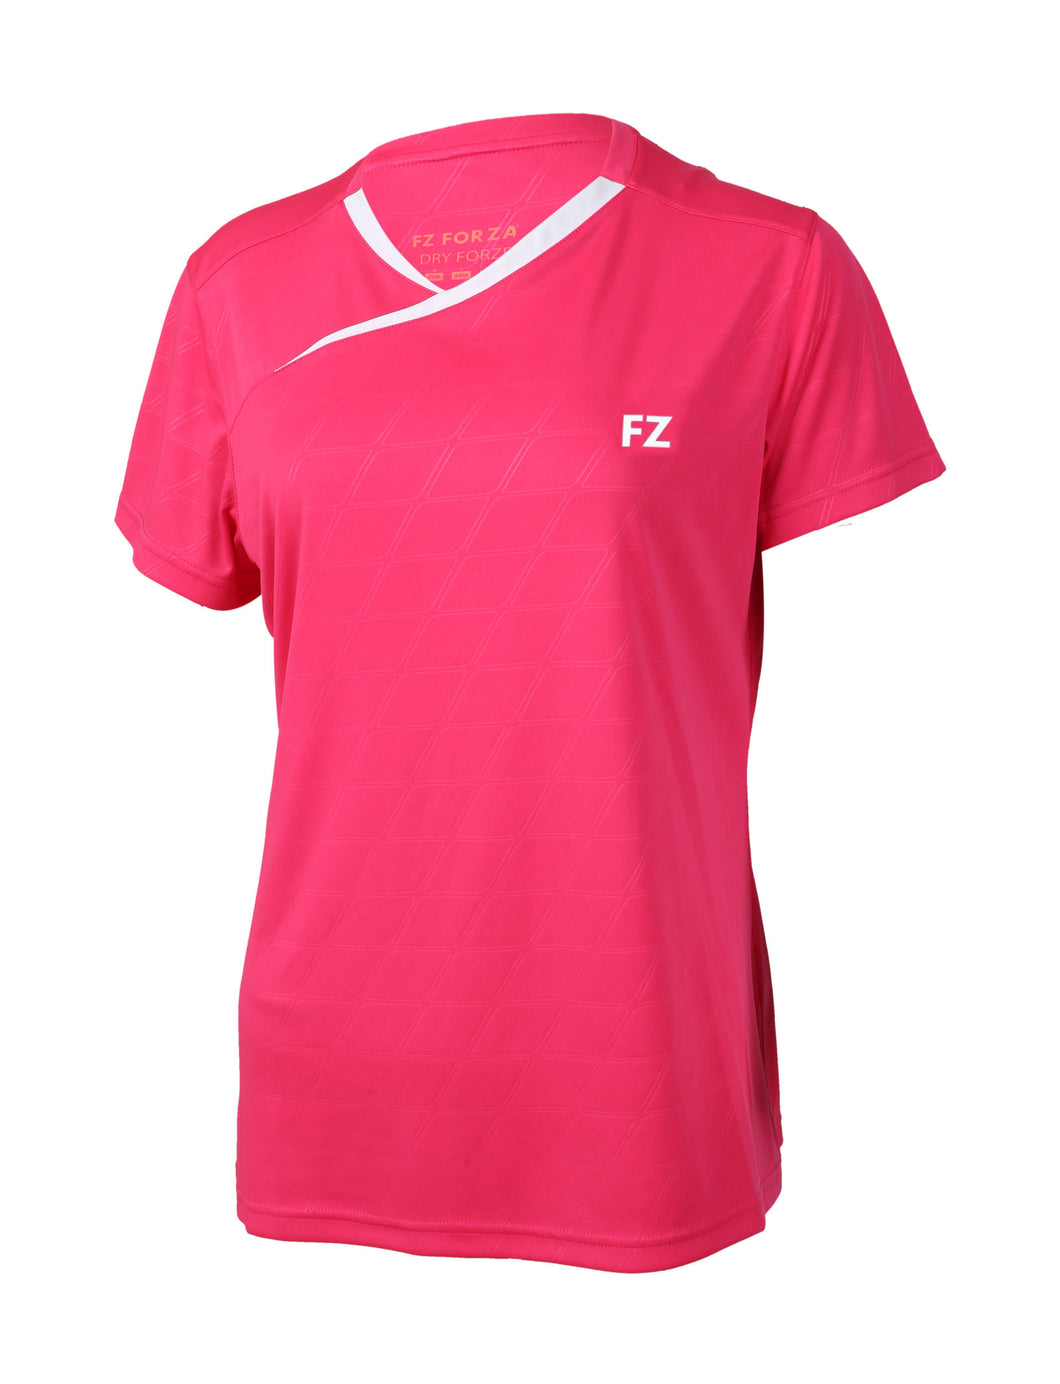 FORZA BLUES T-SHIRT (SPARKLING COSMO)